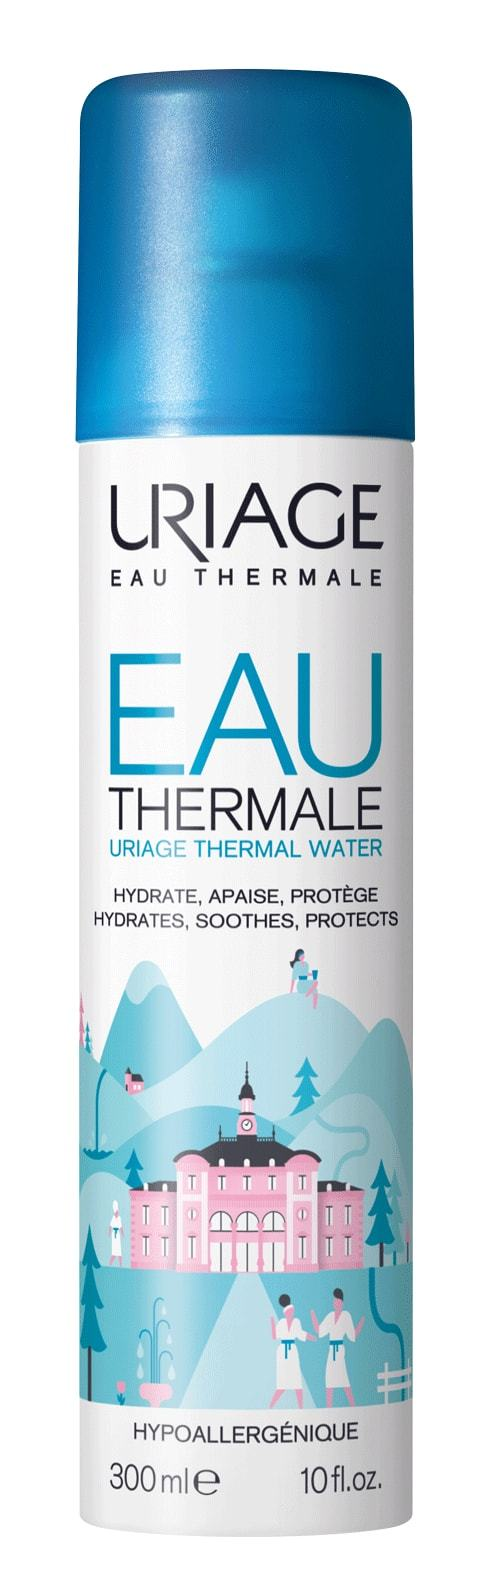 uriage-thermal-water-collectors-edition-300ml-cosmetics-online